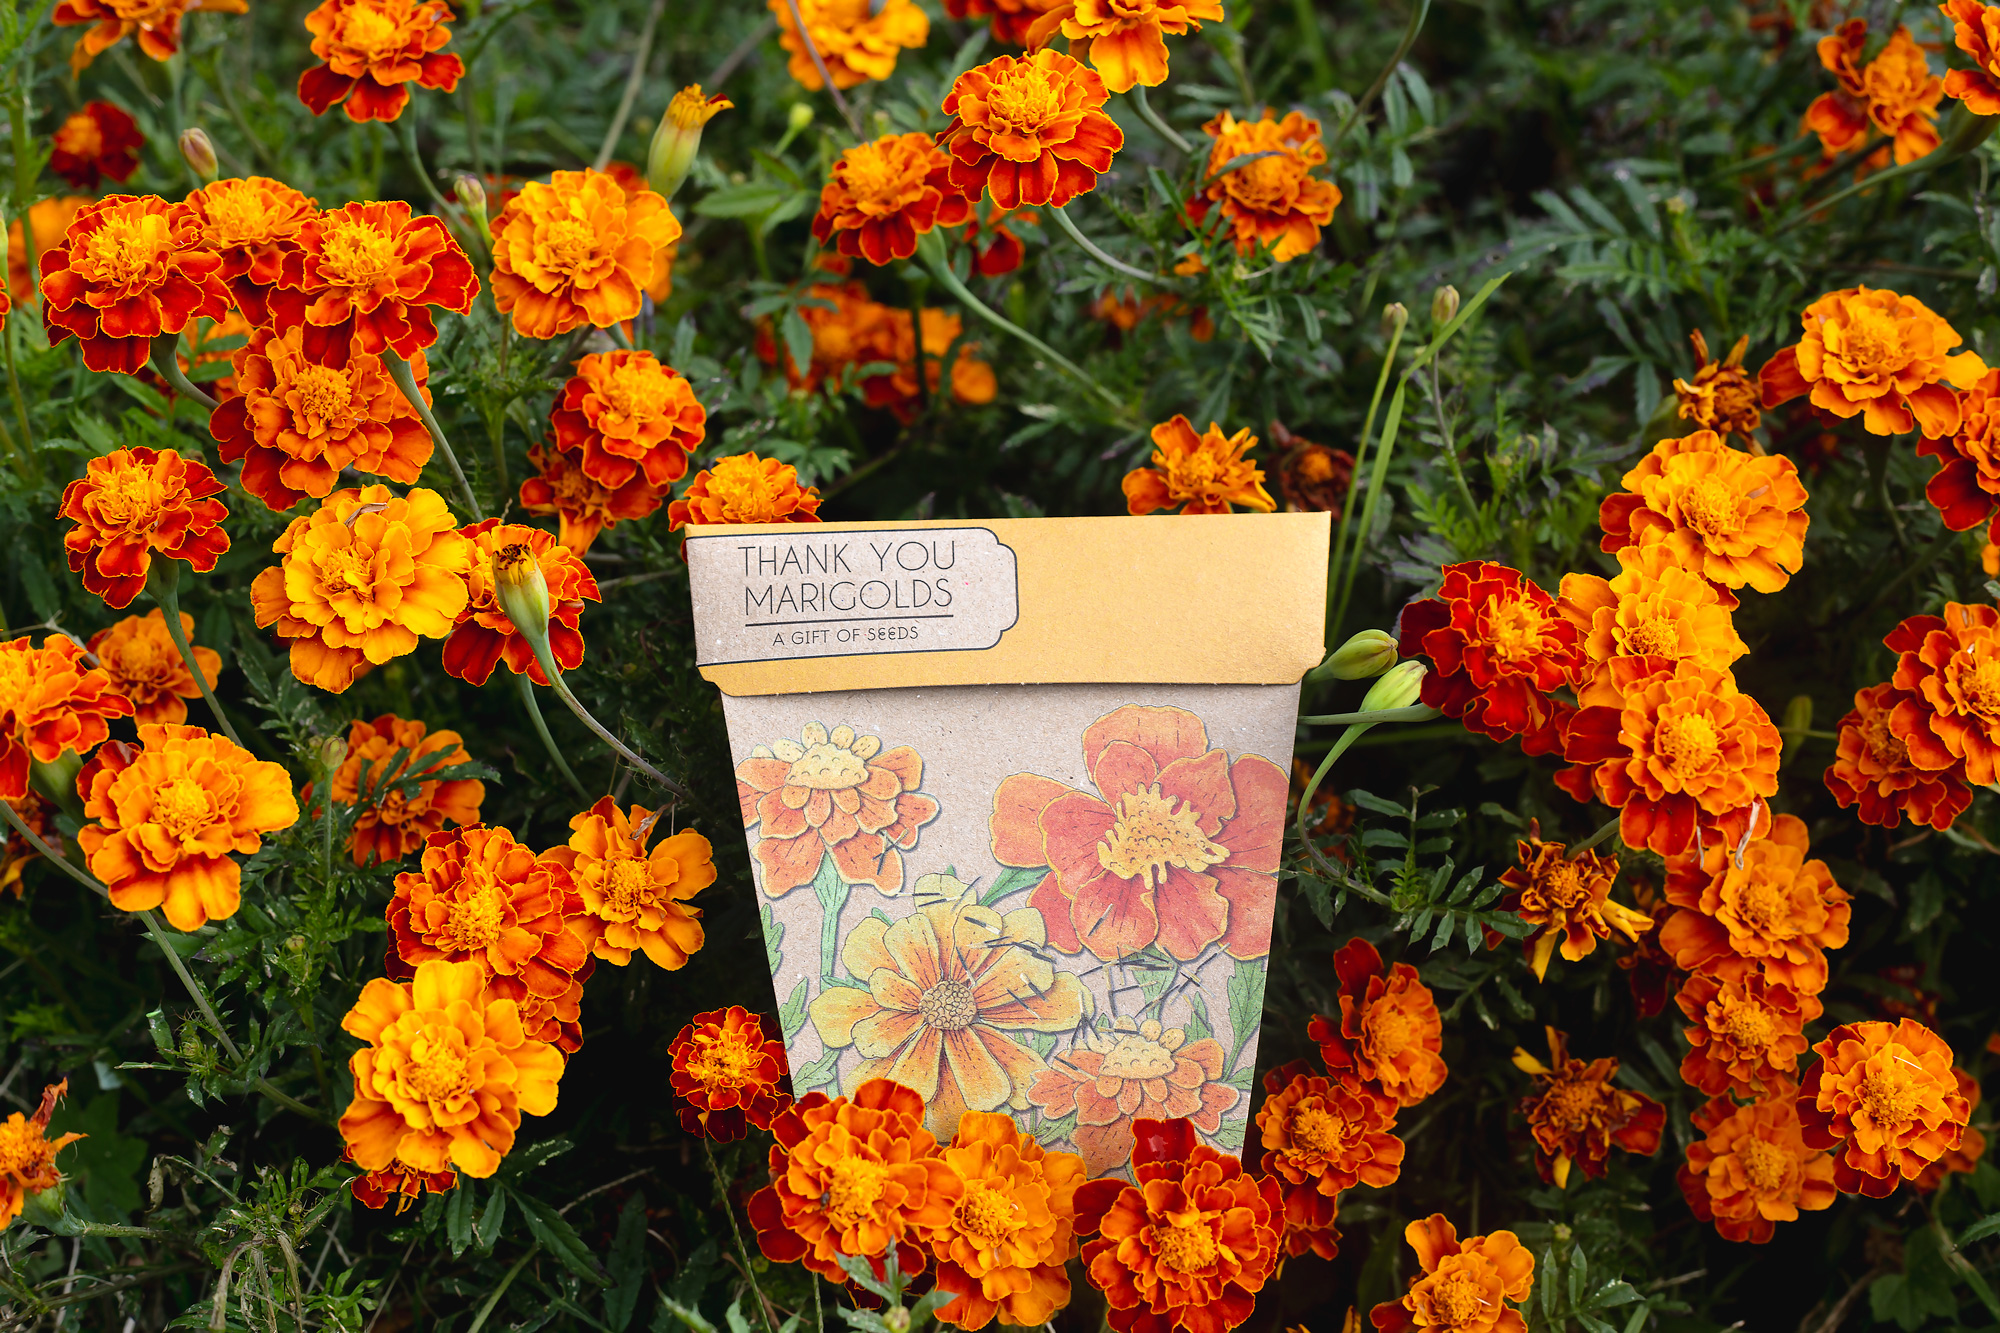 Sow N Sow    Sow 'n Sow was created by Michelle Brady who in seeking a more creative career combined her love for plants and gardens with the dream of running her own business.  Sow 'n Sow's products are made in Australia using environmentally-friendly materials including 100% recycled paper.